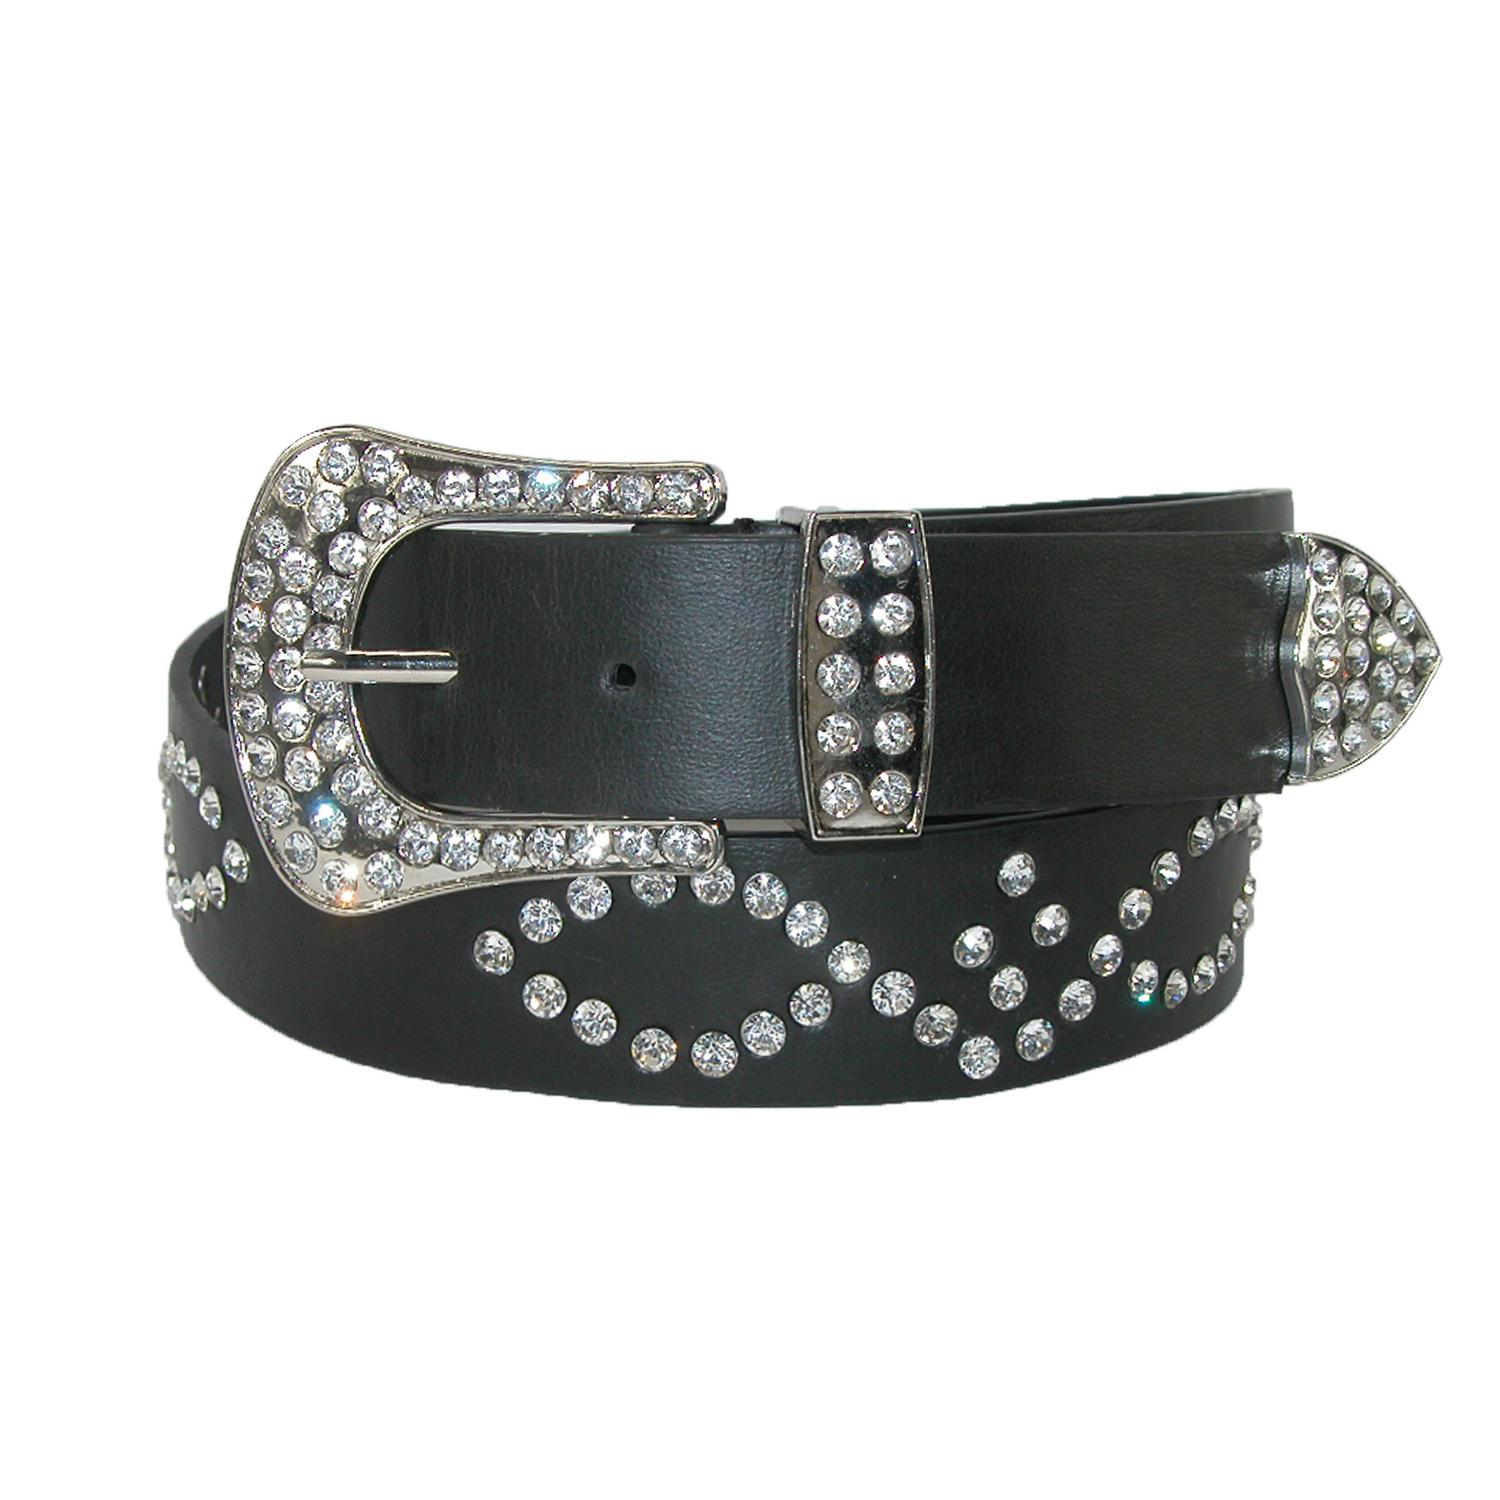 3 D Belt Company Women's 1 3/8 Inch Bridle Belt With Rhinestones